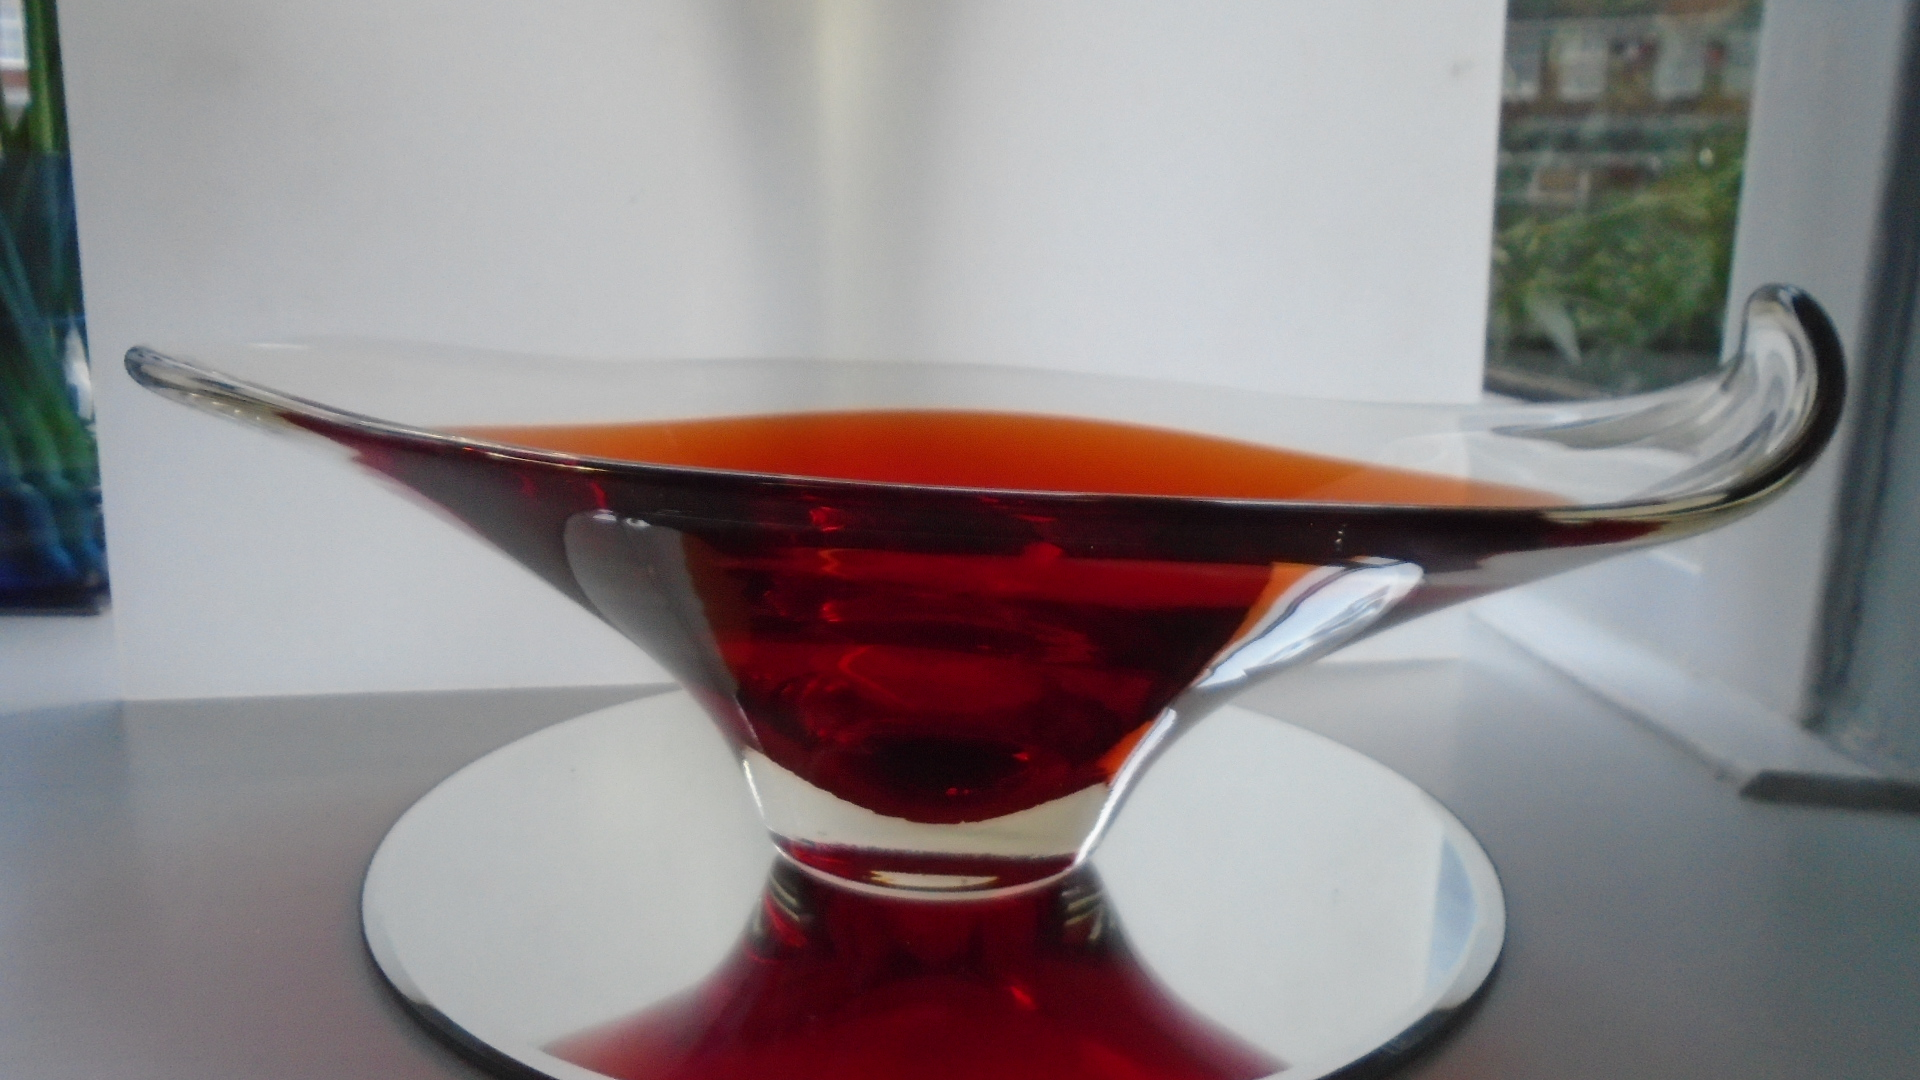 Offered for sale is a fine example of a Whitefriars cased ruby in clear crystal glass bowl by Geoffrey Baxter Pattern 9414.